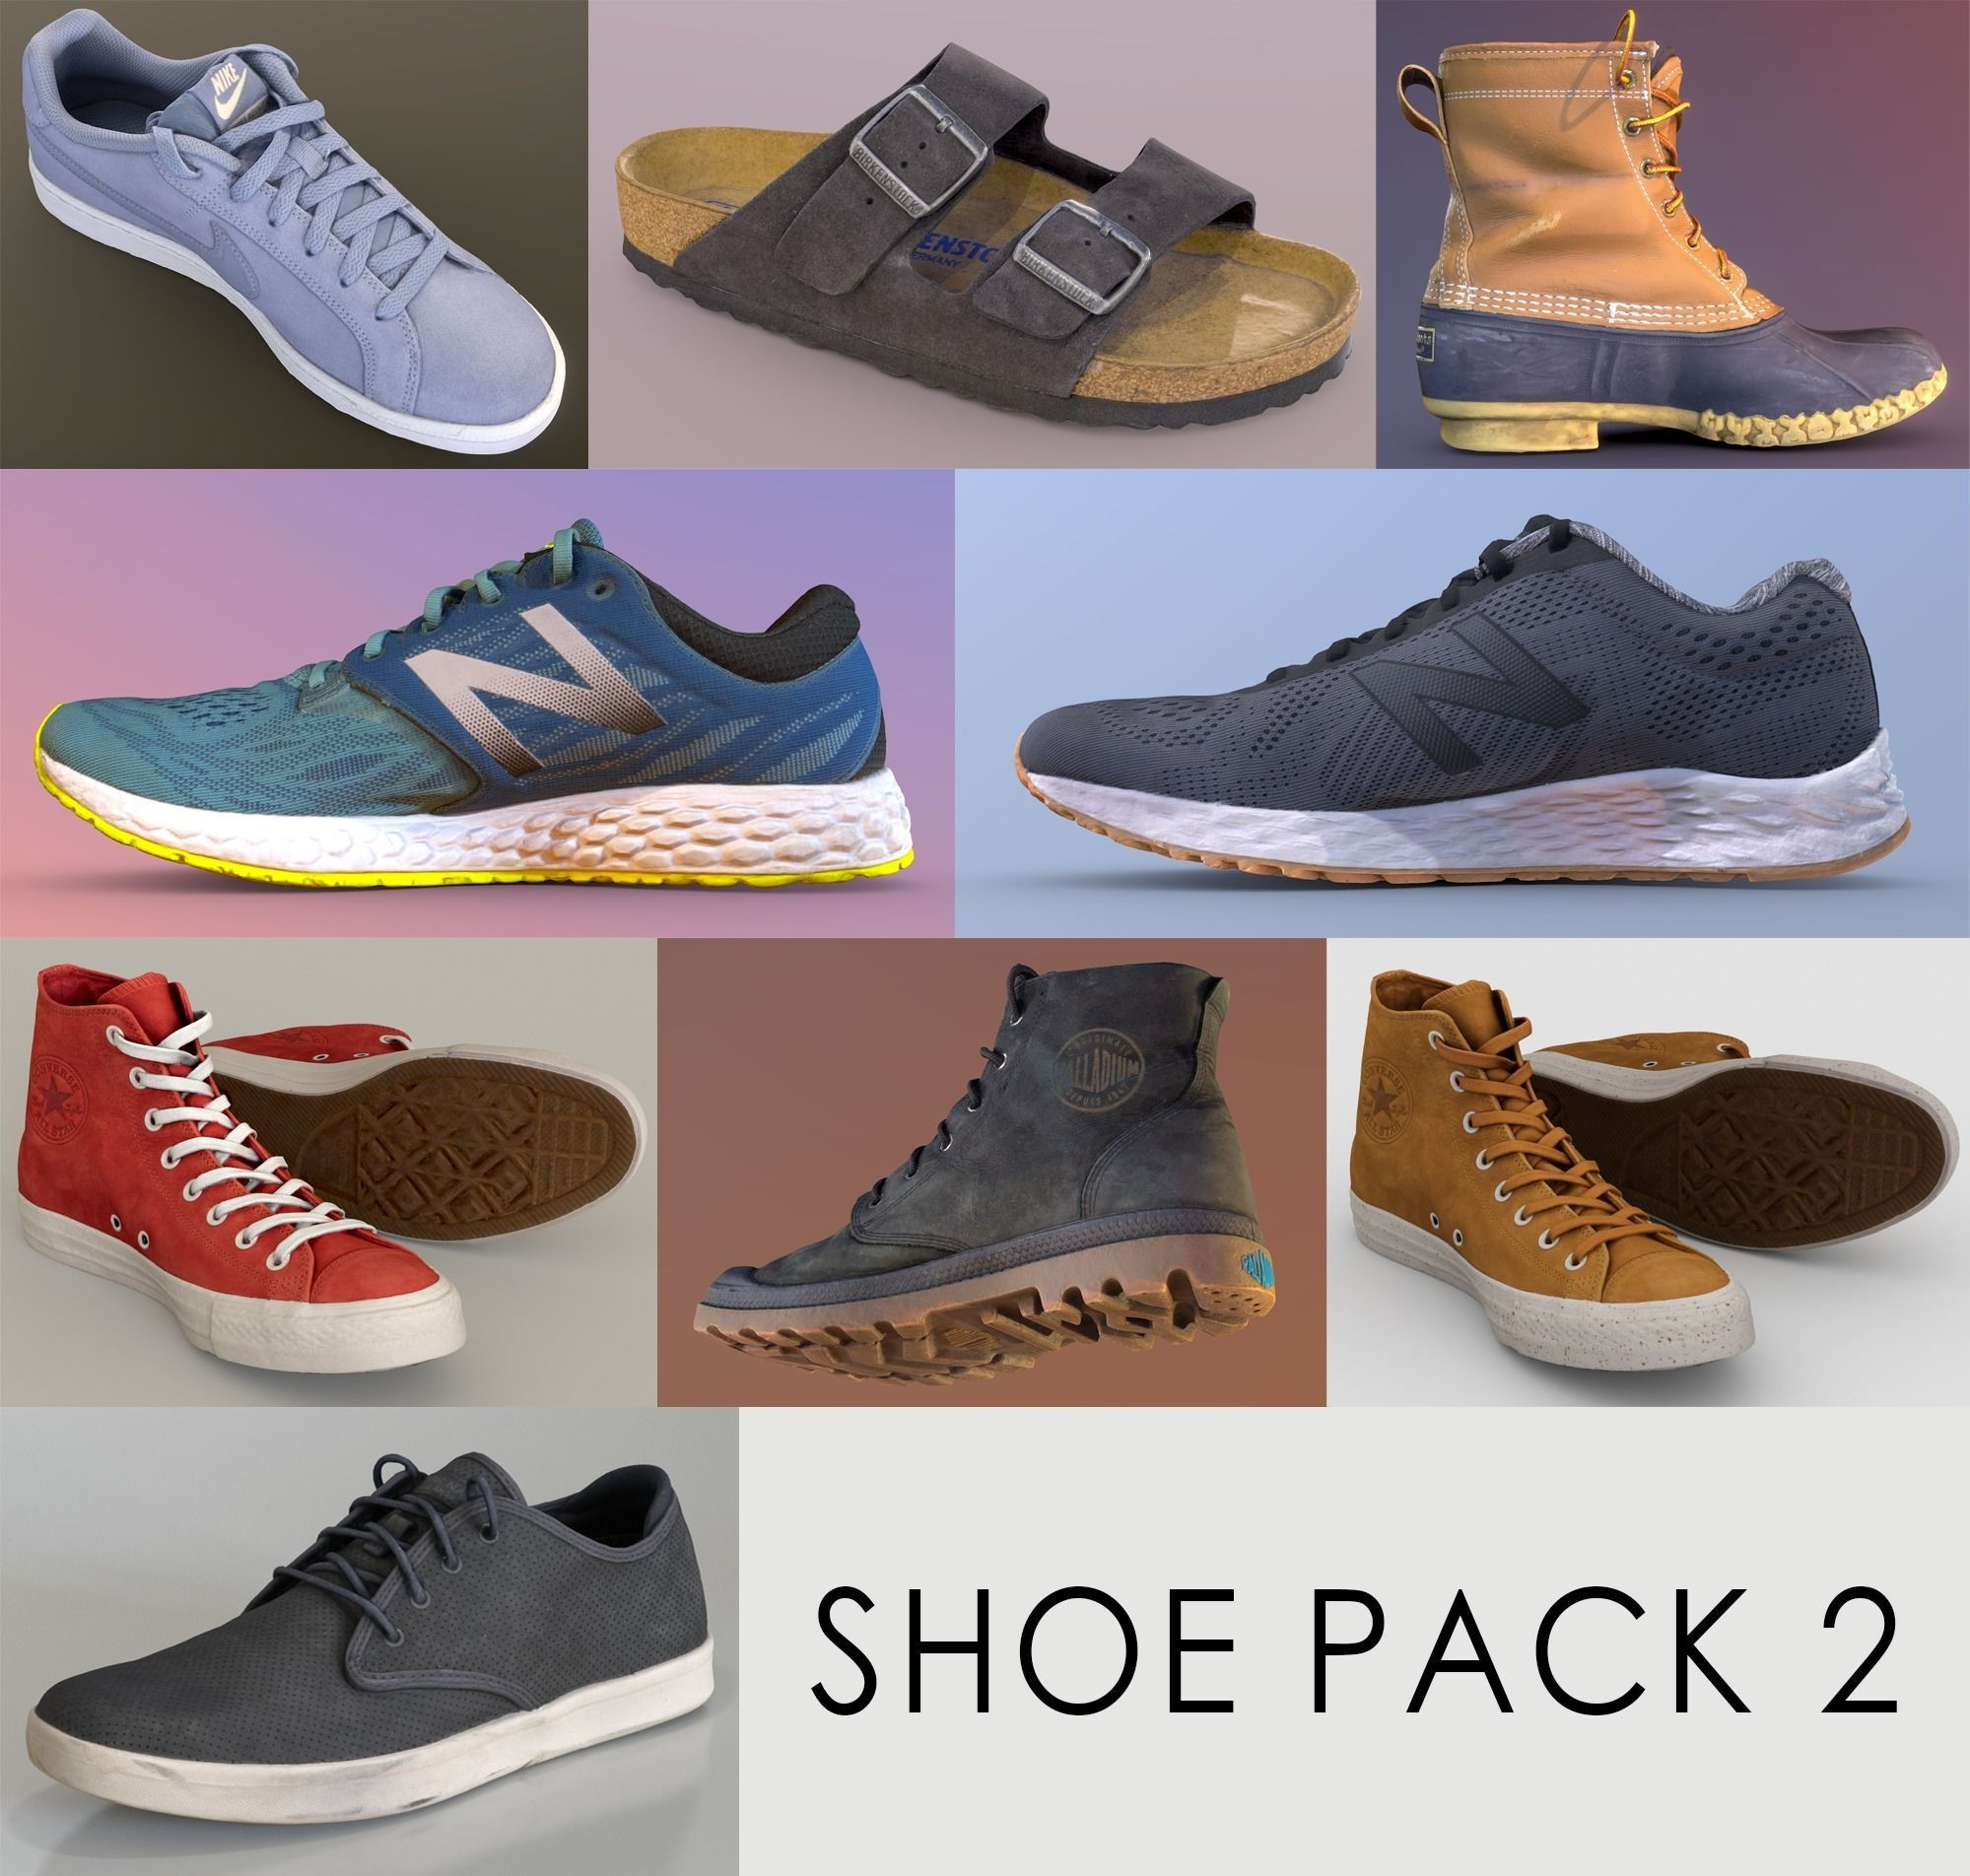 Shoe Pack 2